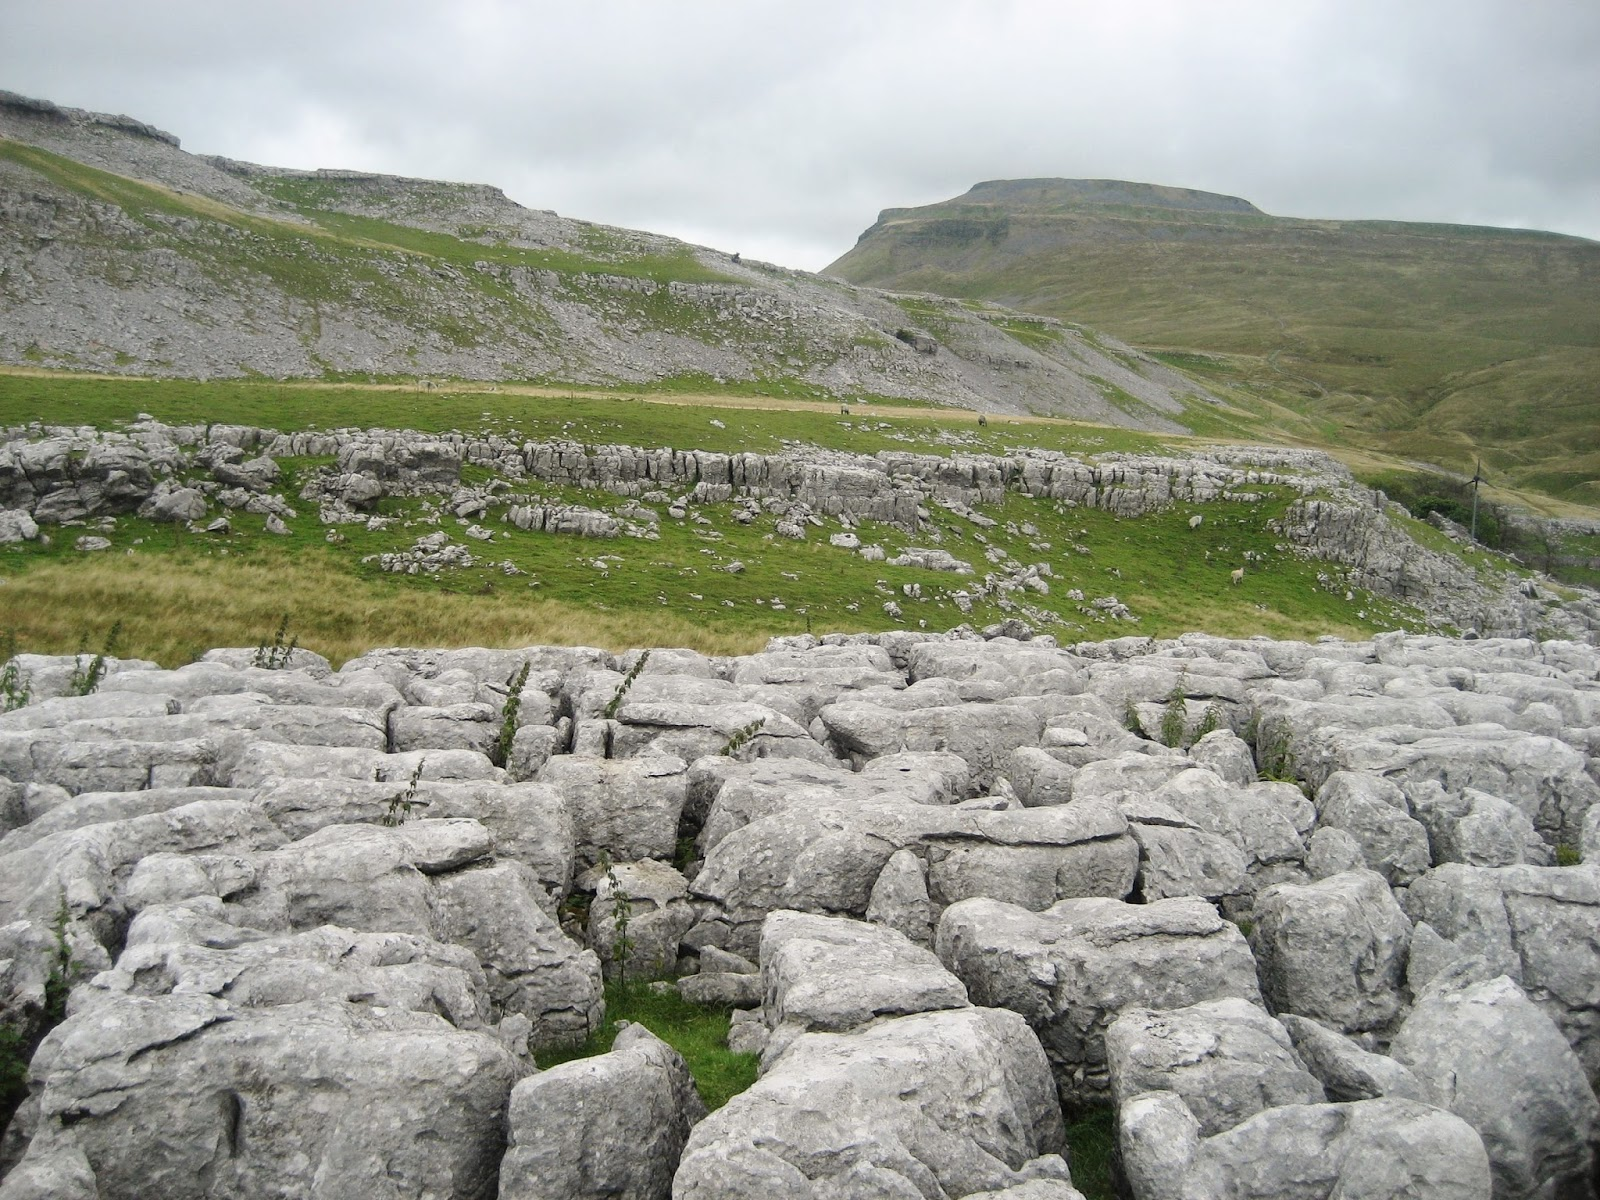 Gordale Limestones forming scars, screes and pavements at Crina Bottom. Stephen Oldfield